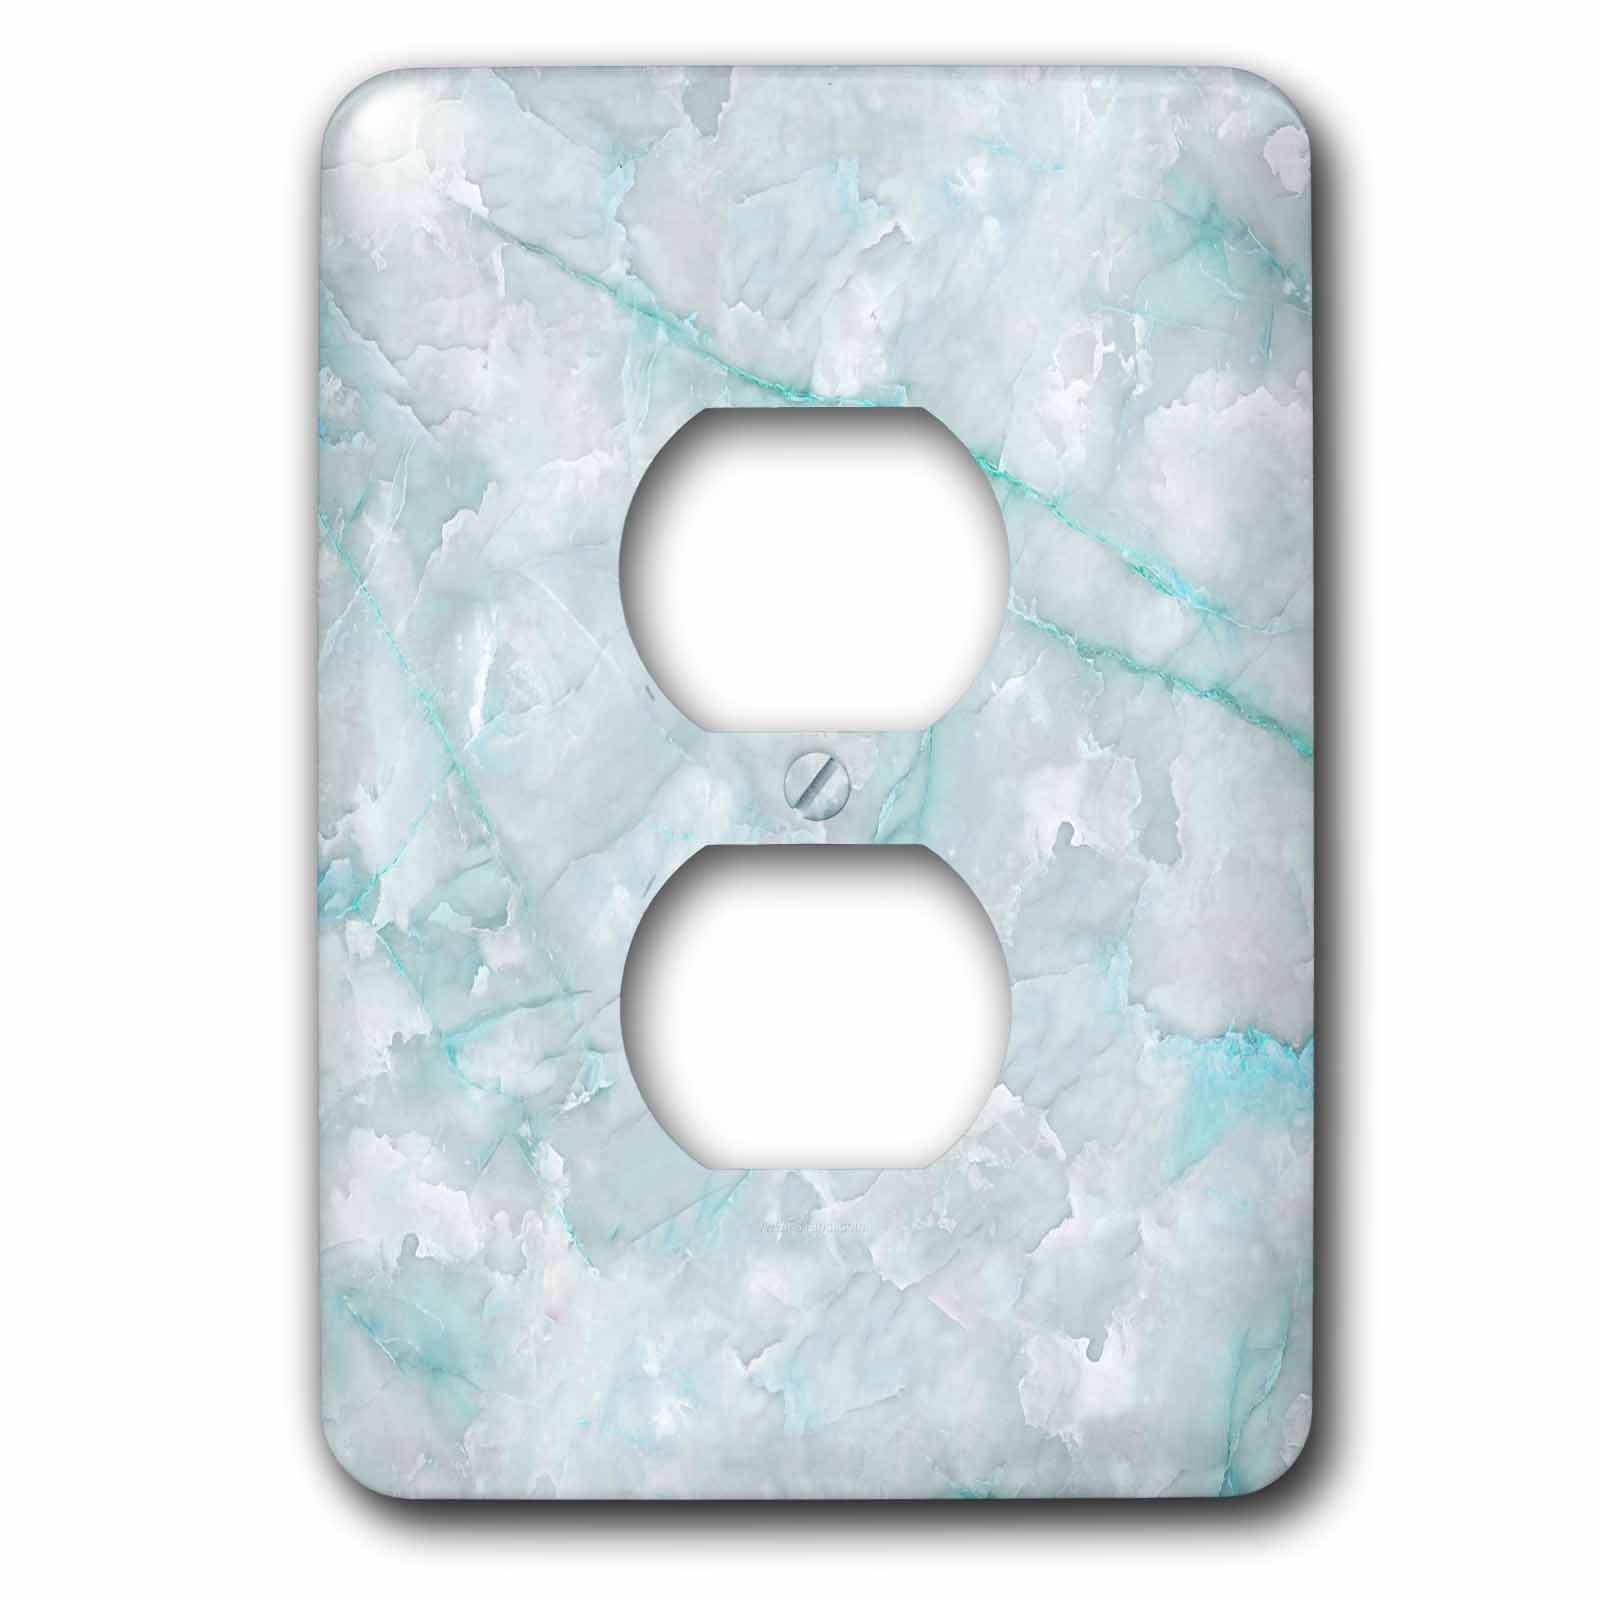 3dRose LSP_275124_6 Image of Trendy Luxury Aqua Teal Quartz and Gray Gemstone Agate Geode Plug Outlet Cover, Mixed